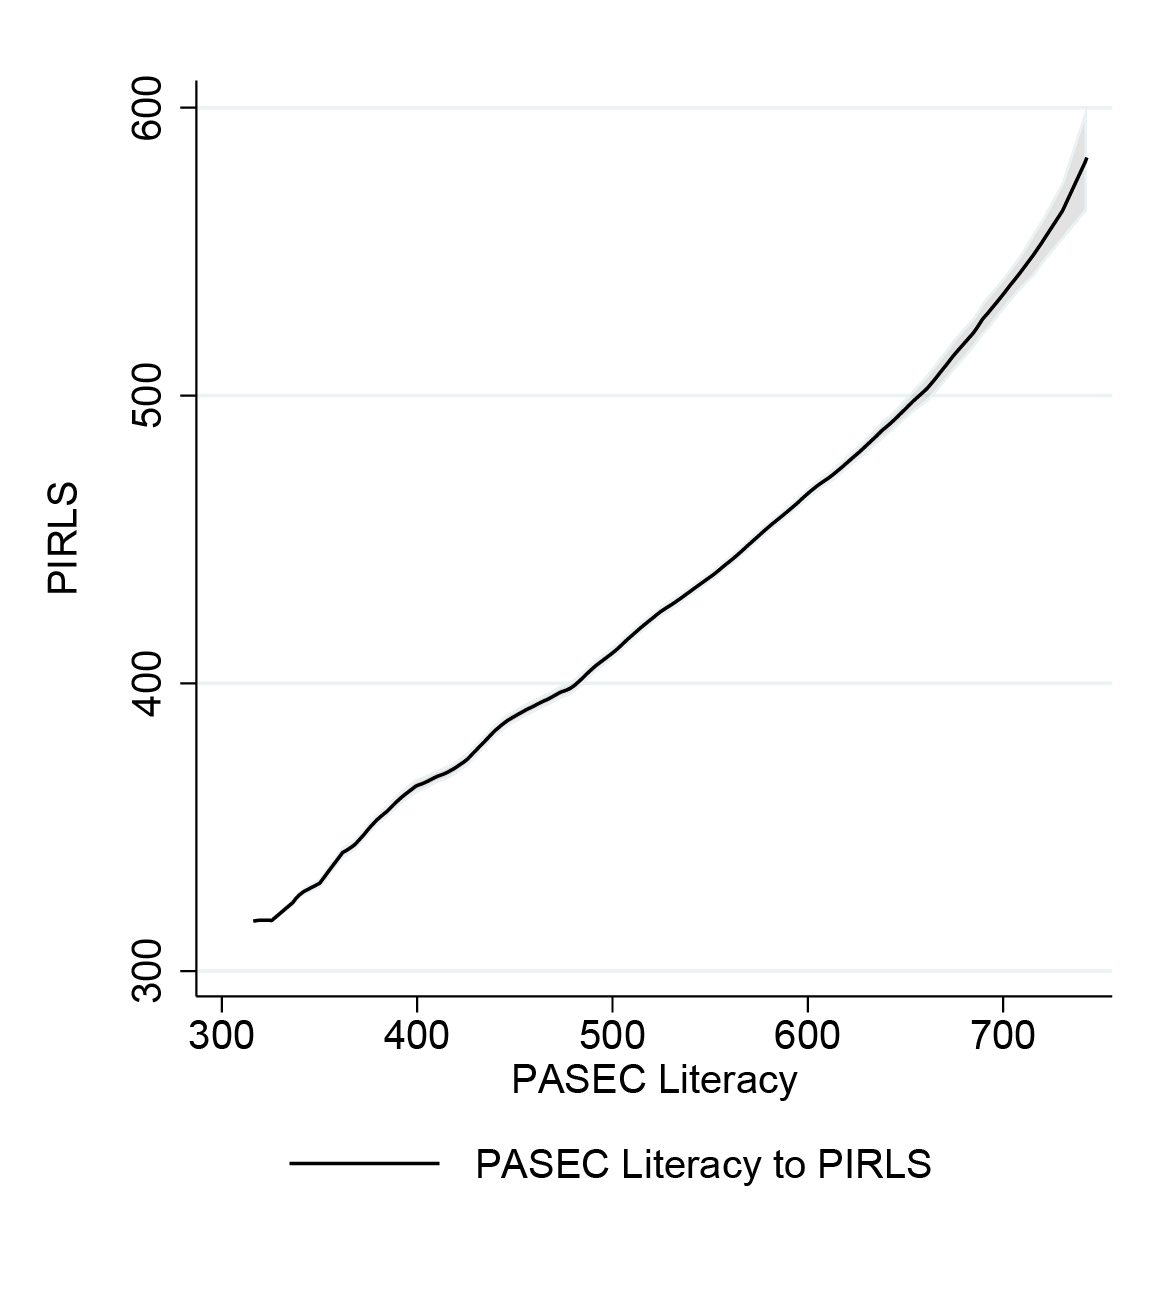 Chart showing the conversion between PASEC literacy and PIRLS as a fairly straight line, with a PASEC score of 500 corresponding to a PIRLS score of about 400 and a PASEC of 700 corresponding to about 530